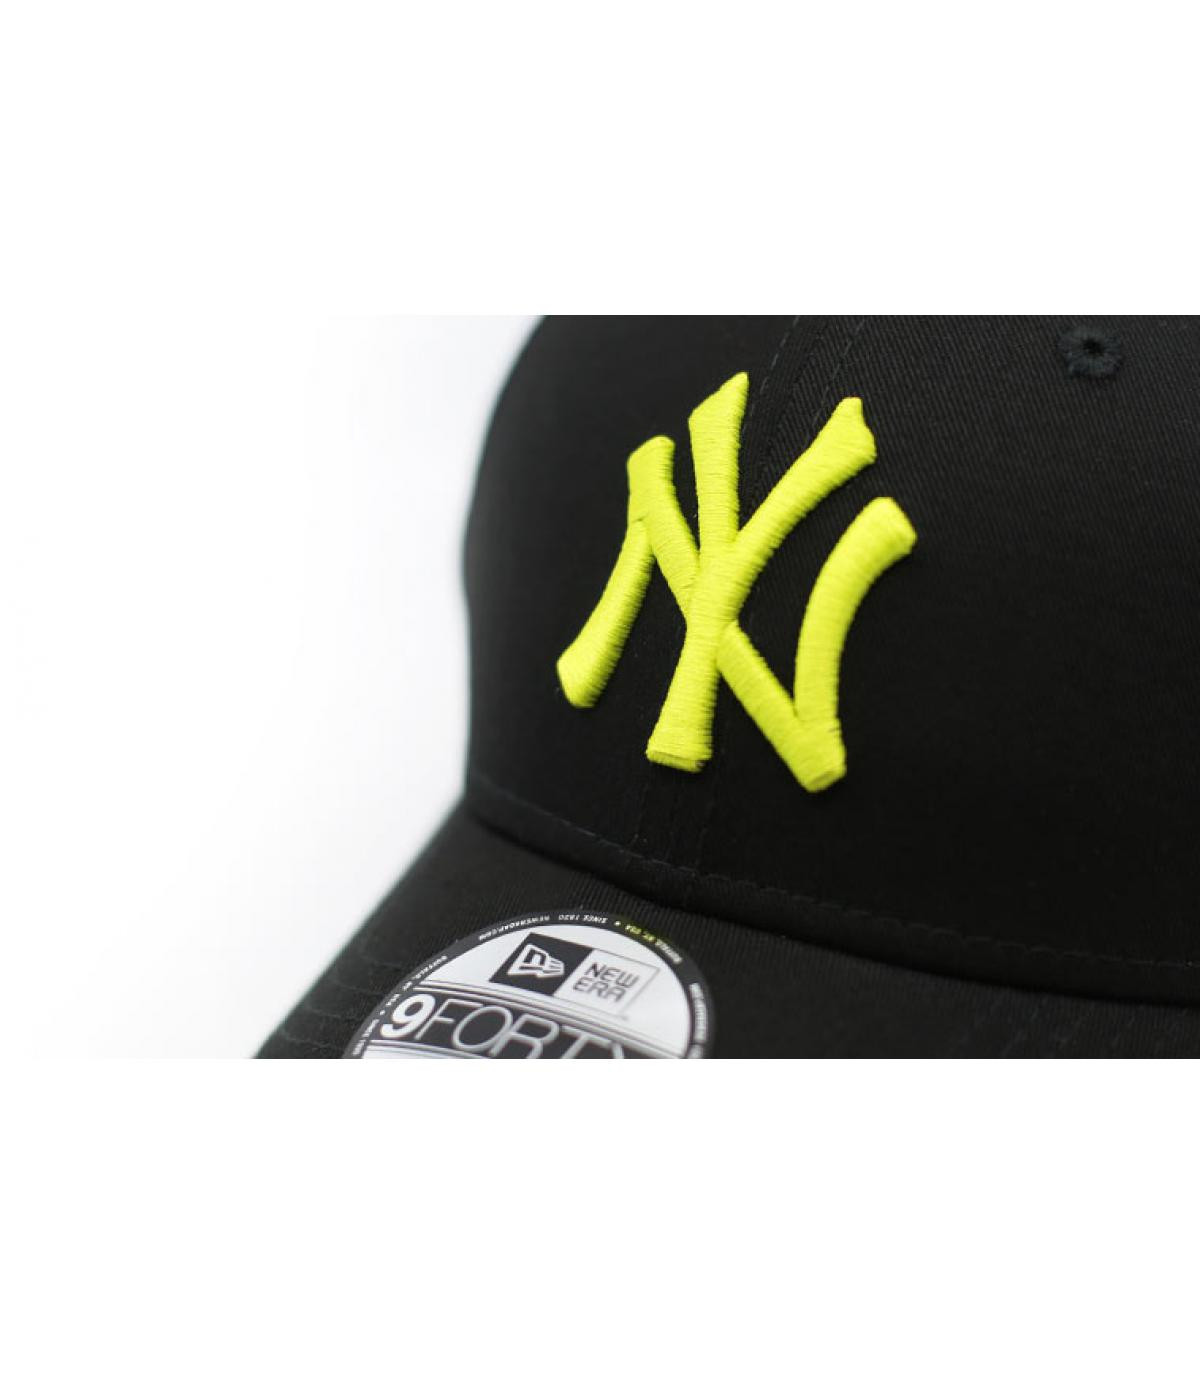 Details Cap League Ess NY 9Forty black cyber green - Abbildung 3